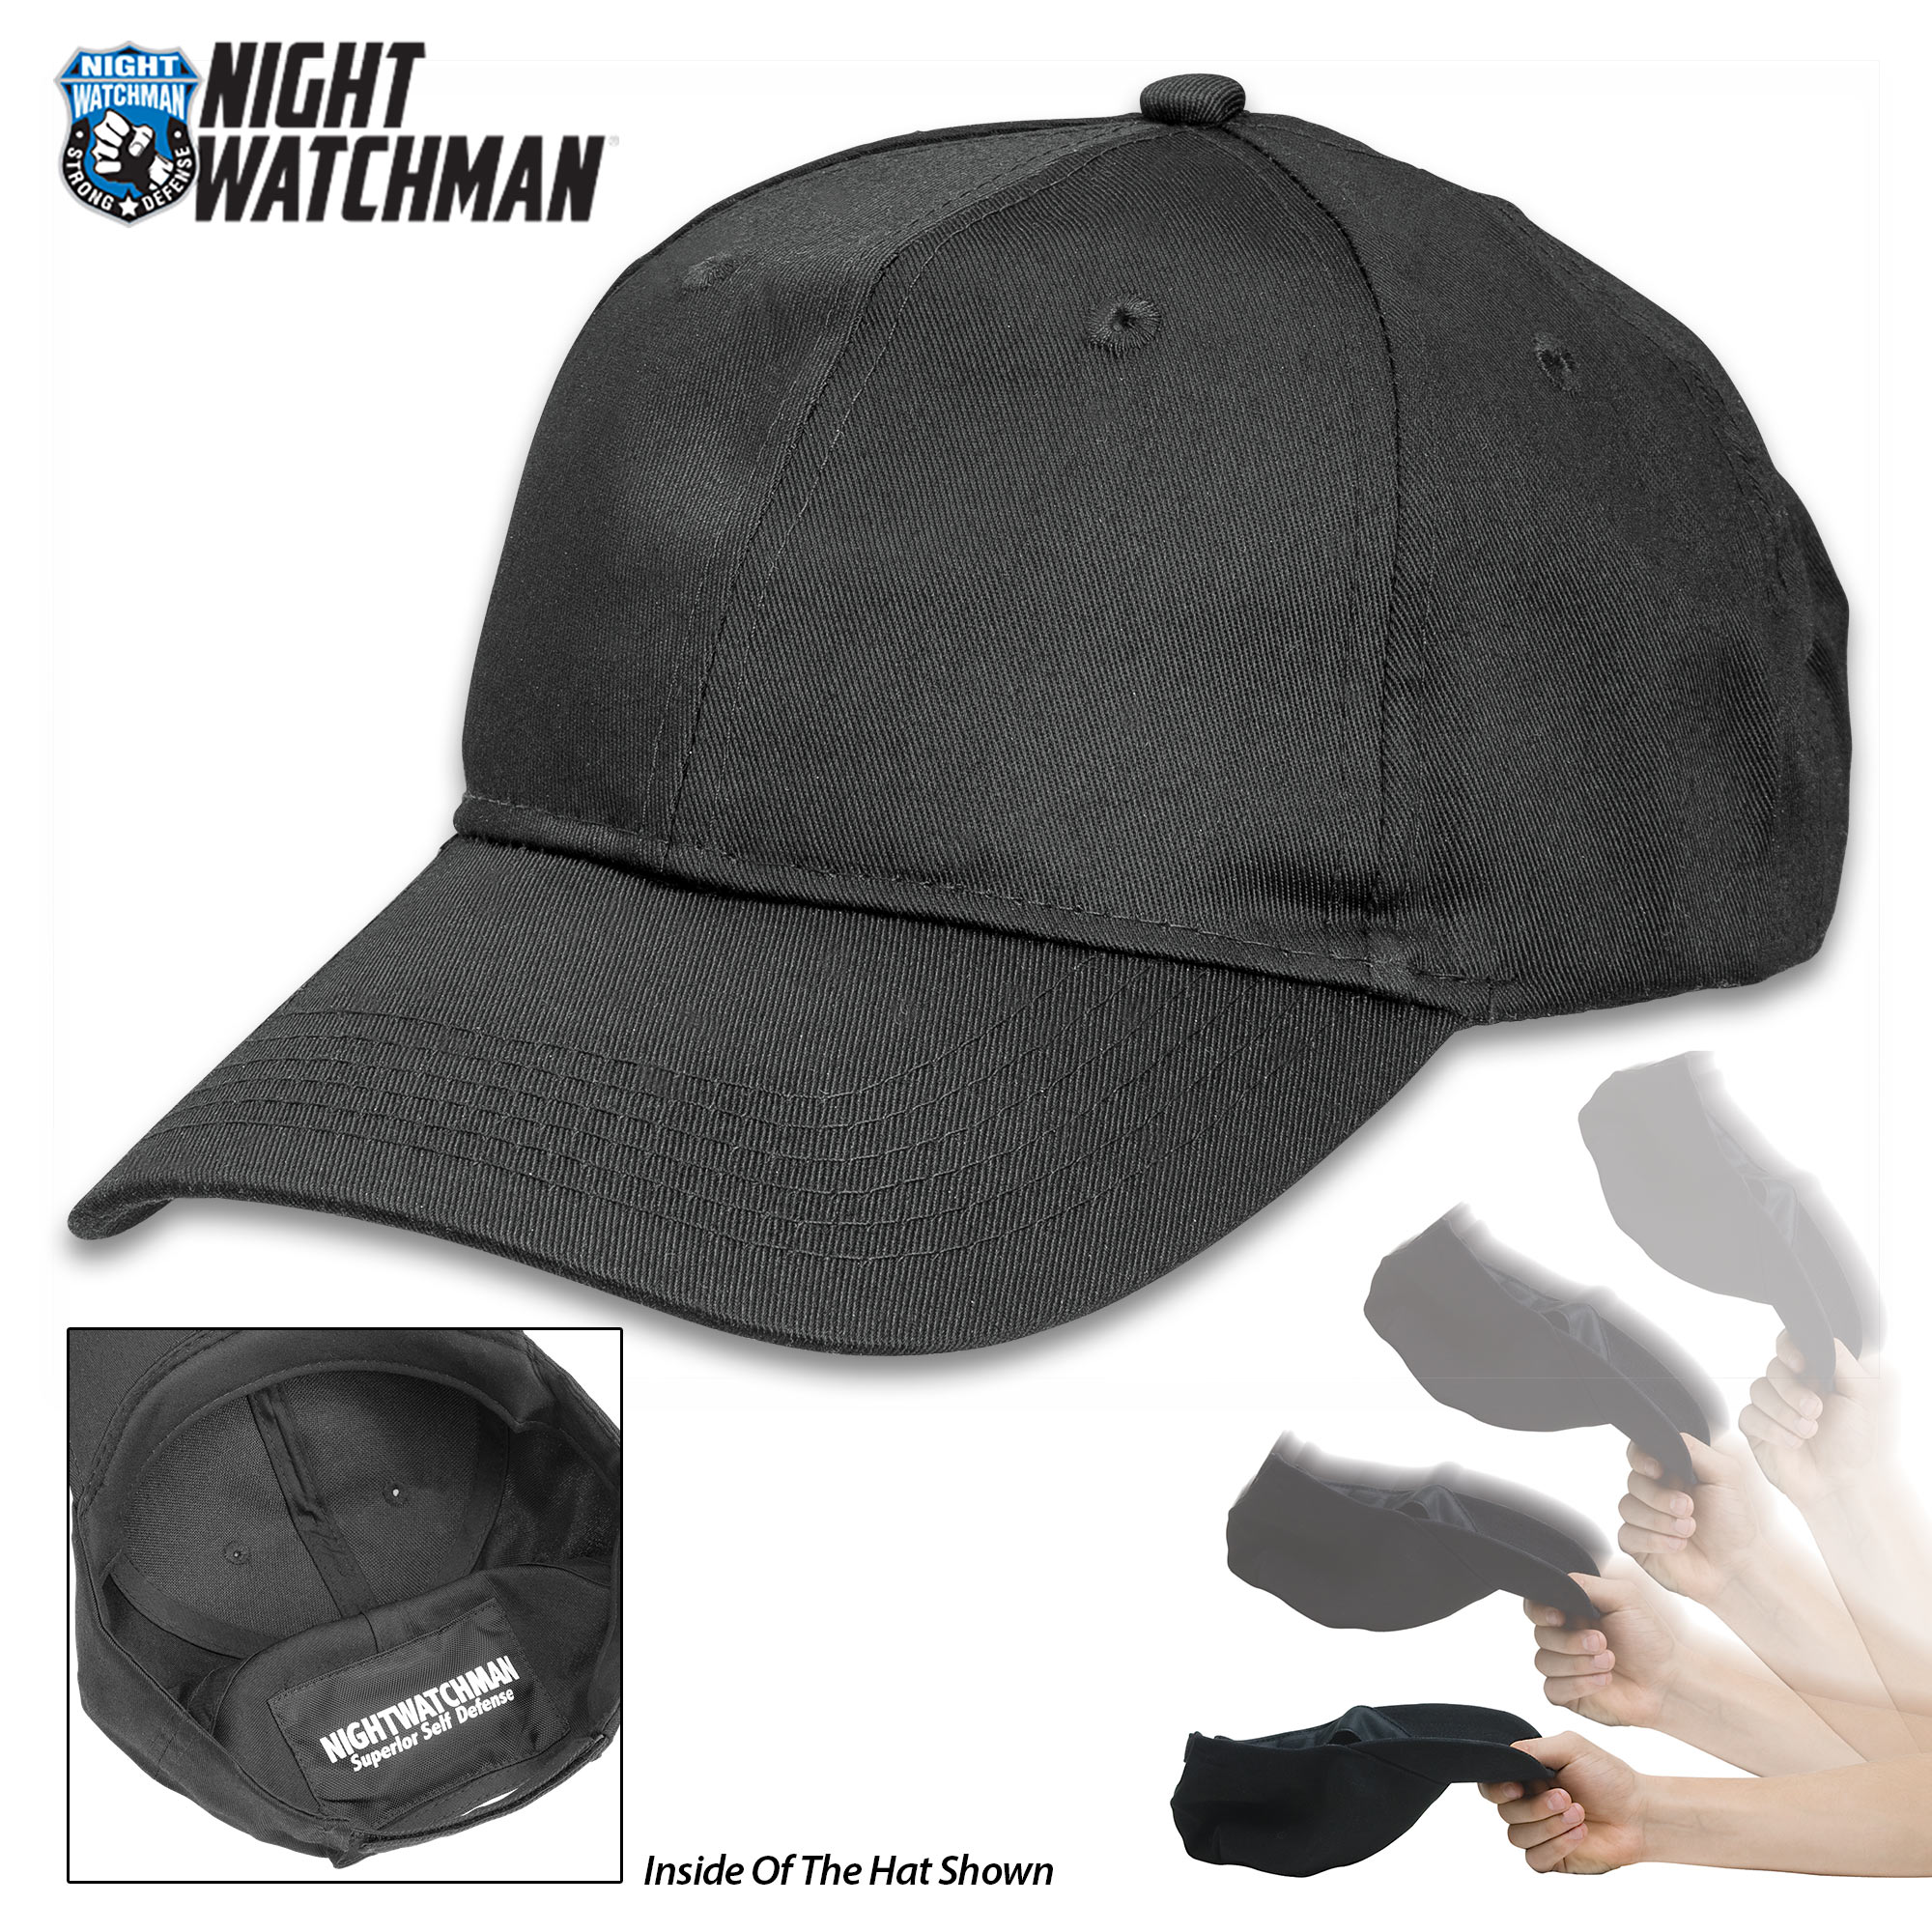 309e55472fe Night Watchman Self Defense SAP CAP with Lead Pocket BK1438 ...